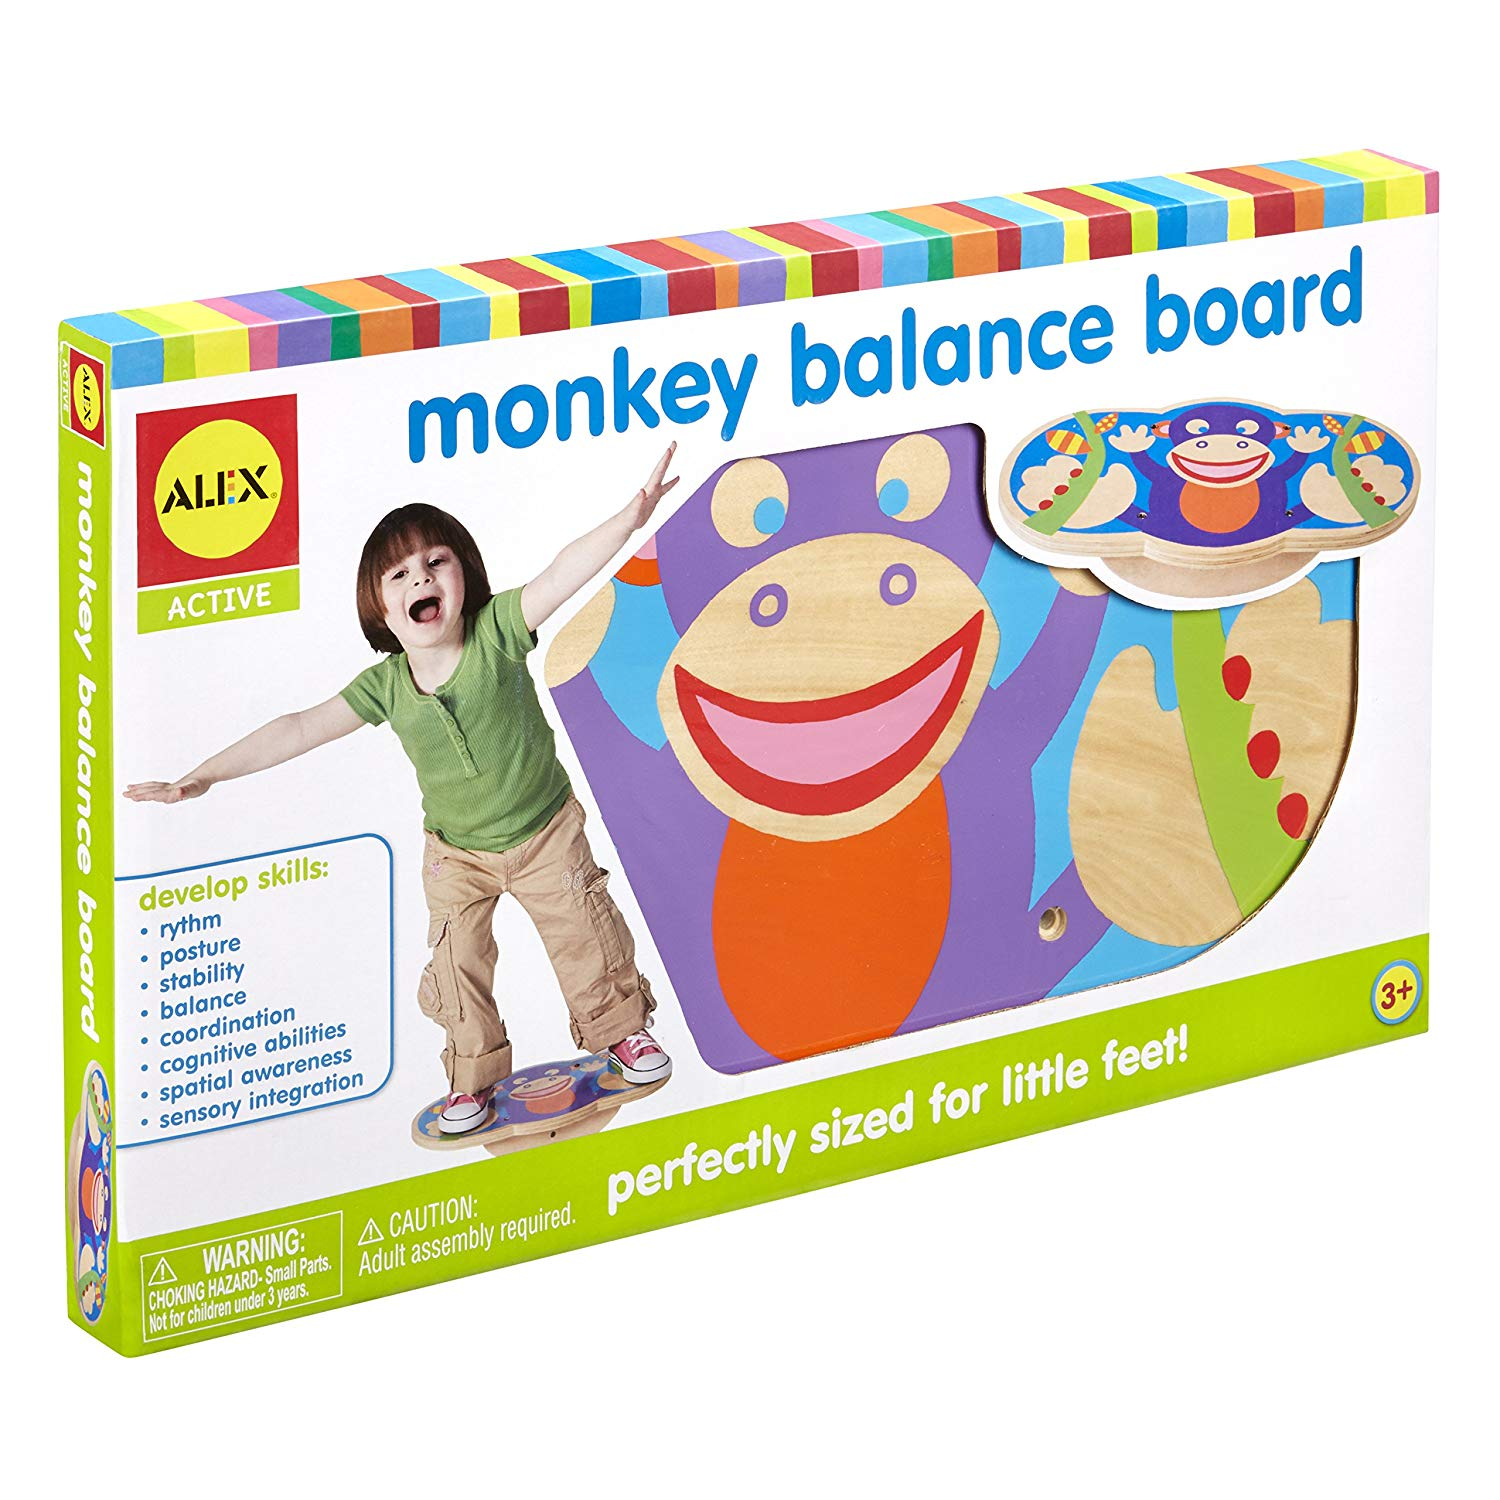 Balance Board For 2 Year Old: Top Ten Toys For The Active Boy Or Child With ADHD SPD Or